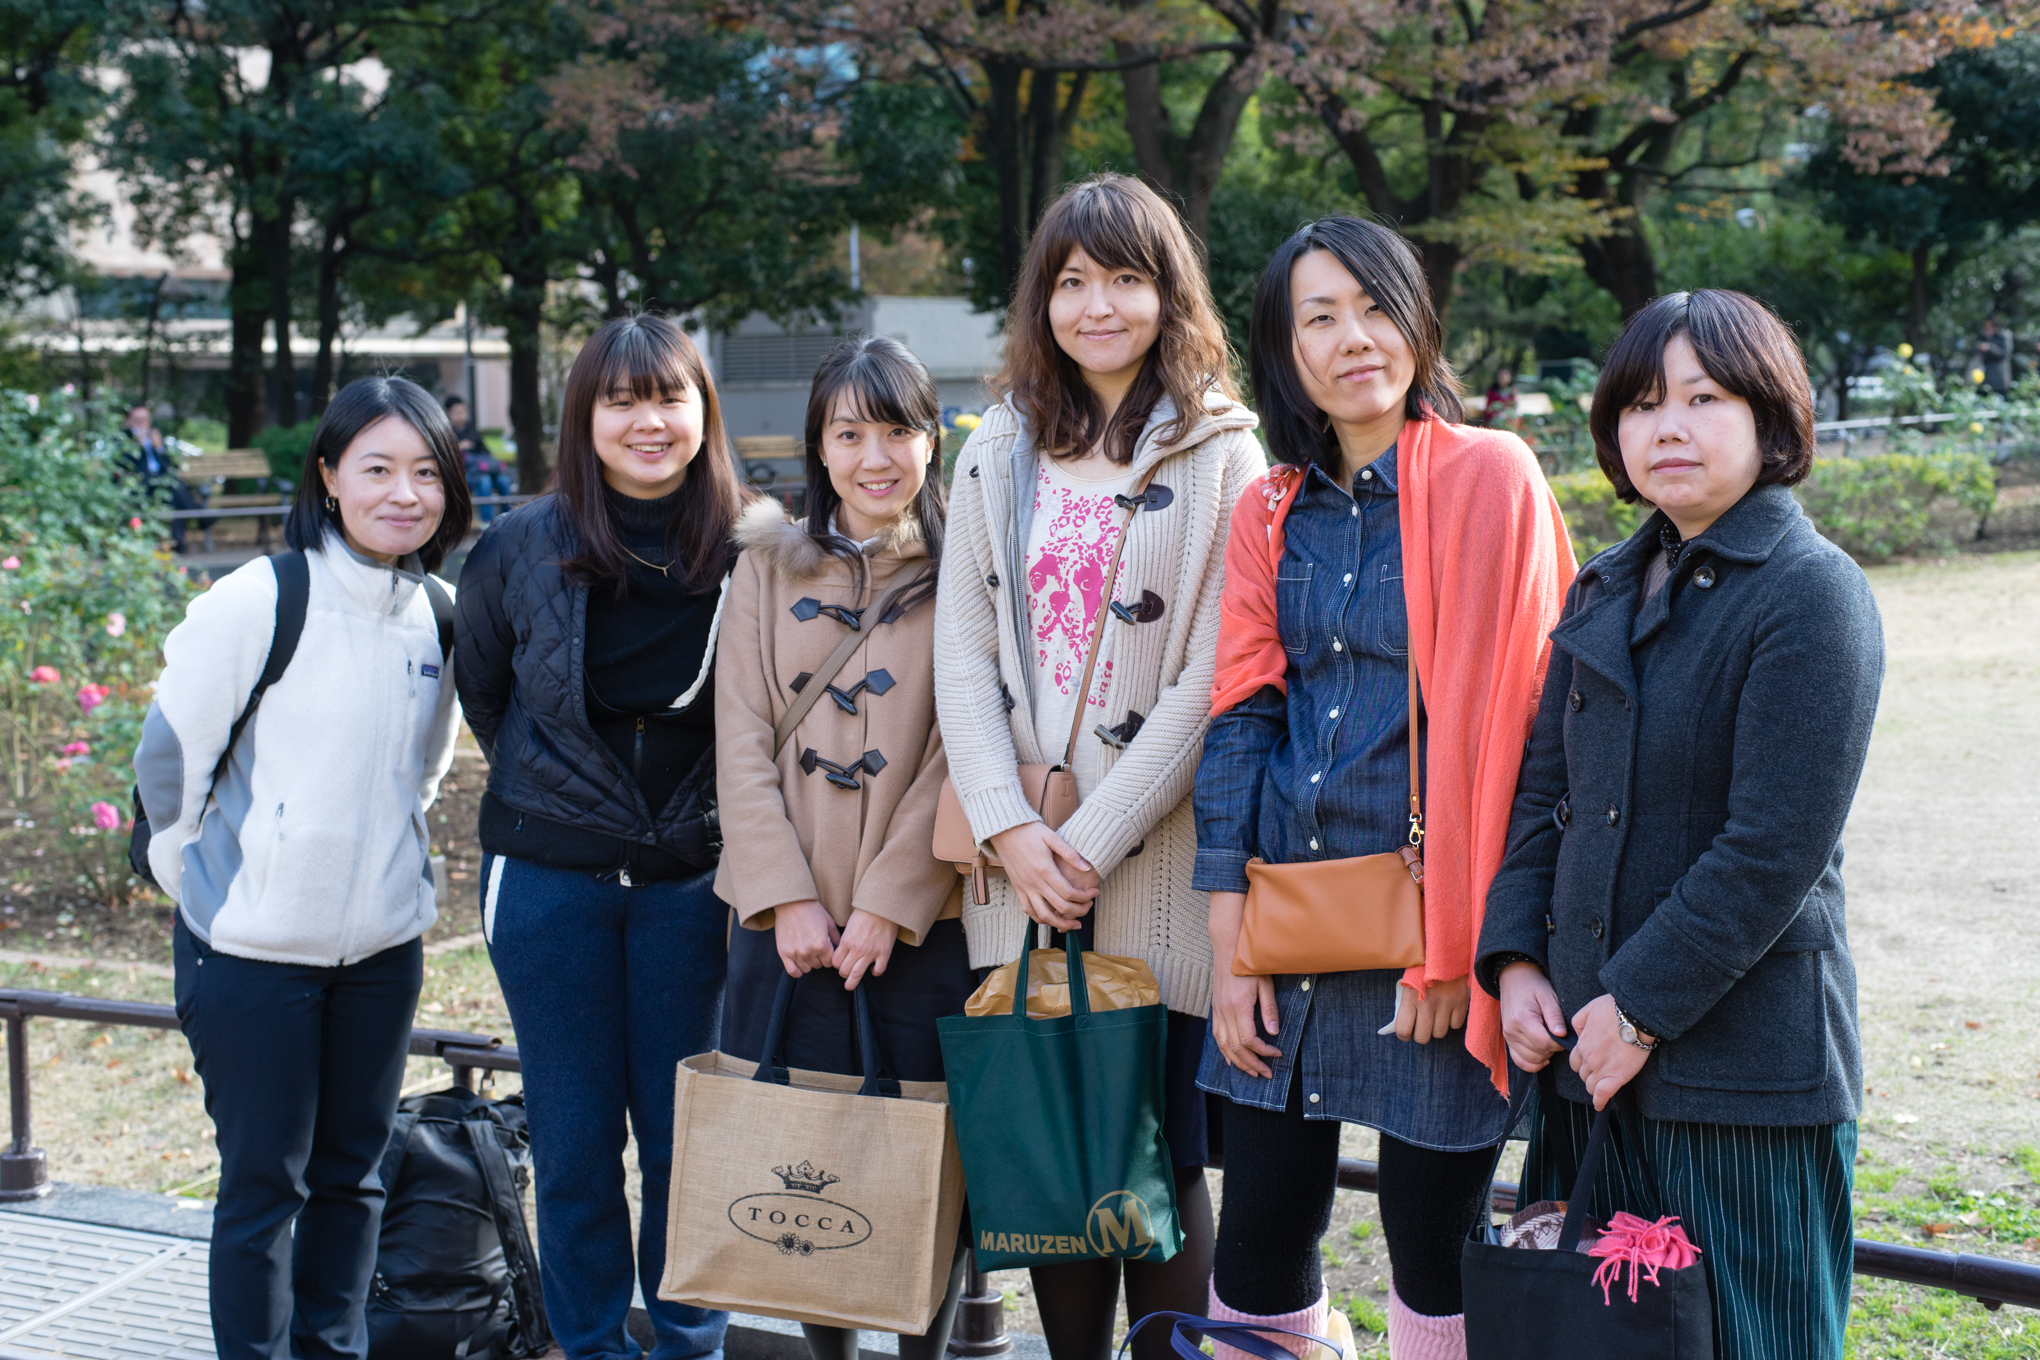 magewappa-picnic-in-tokyo-info-2016-70